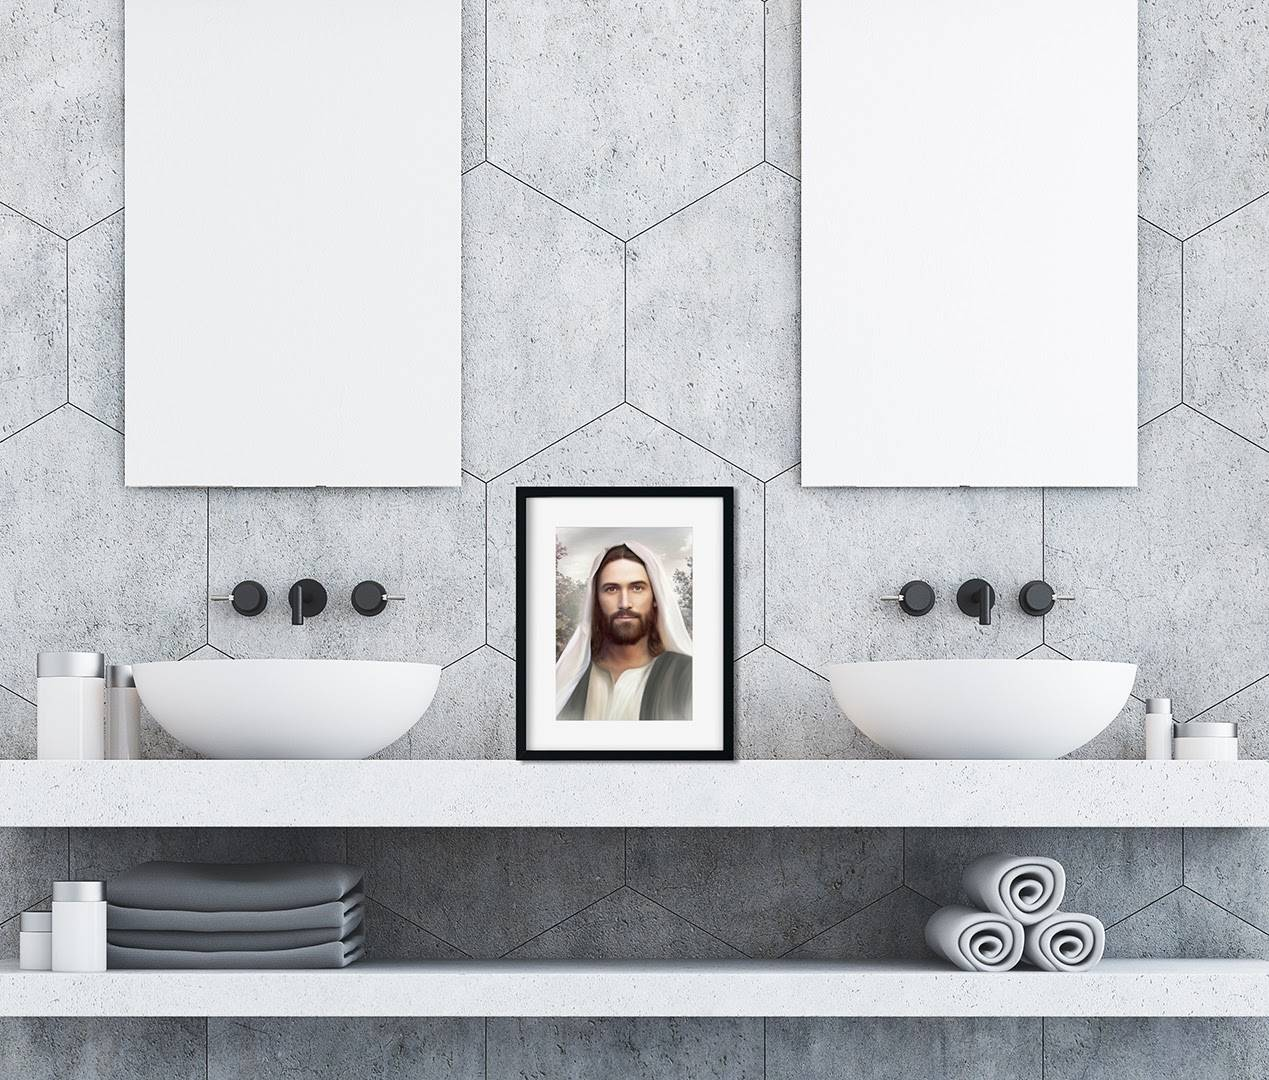 Small art portrait of Christ placed between two bathroom mirrors.